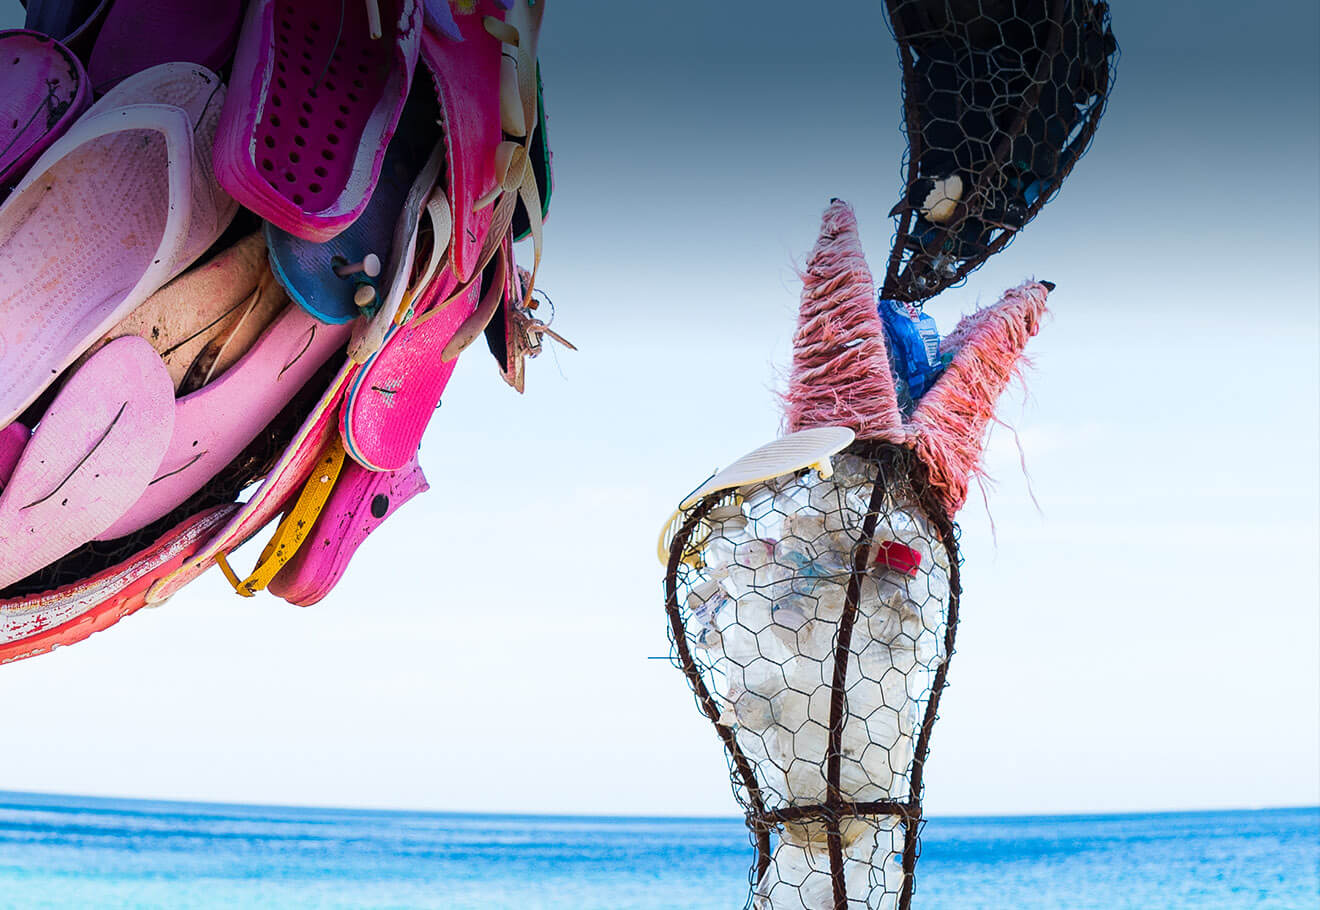 Flamingo art sculpture made using ocean plastic pollution